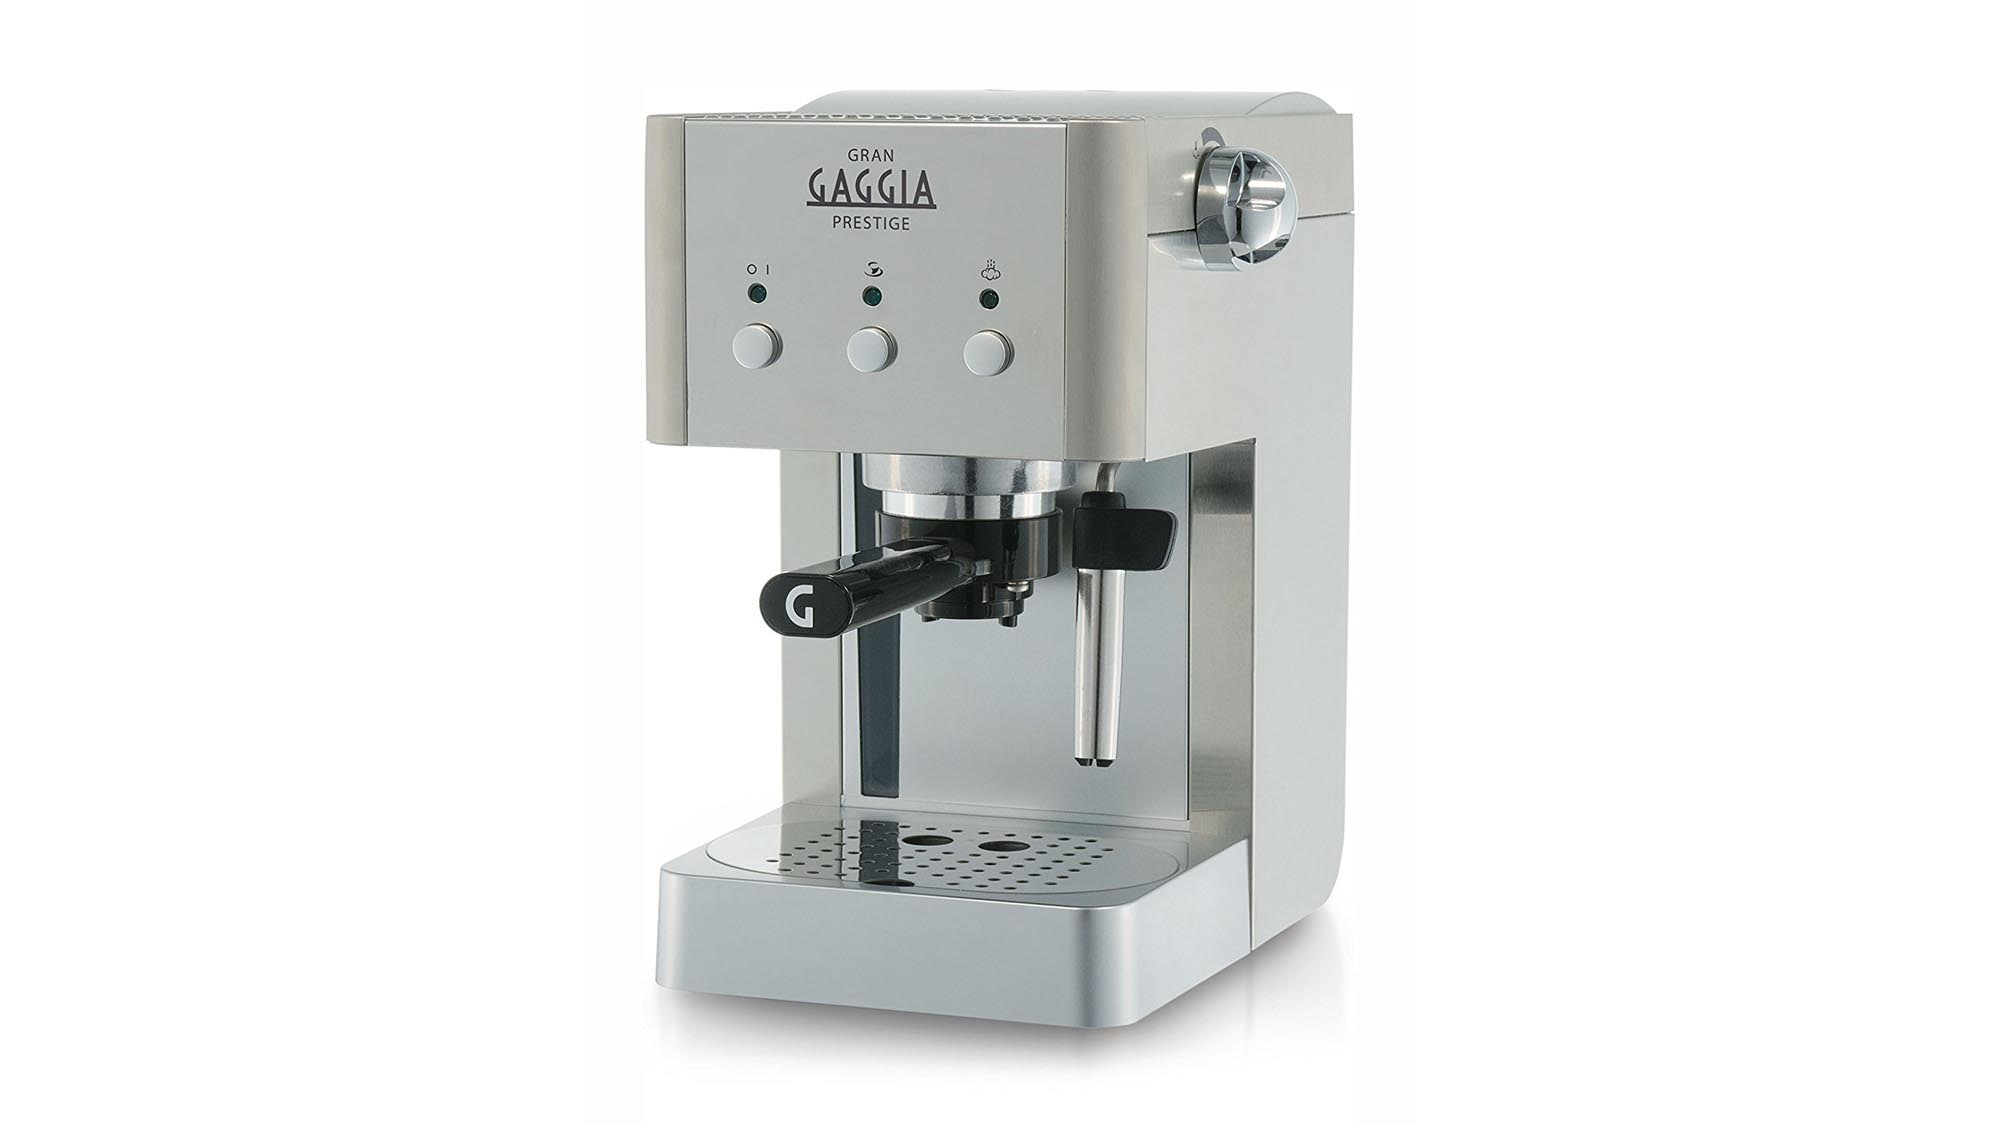 Coffee Maker Reviews Best Value : Best coffee machine 2018: How to pick the right coffee machine for you Expert Reviews